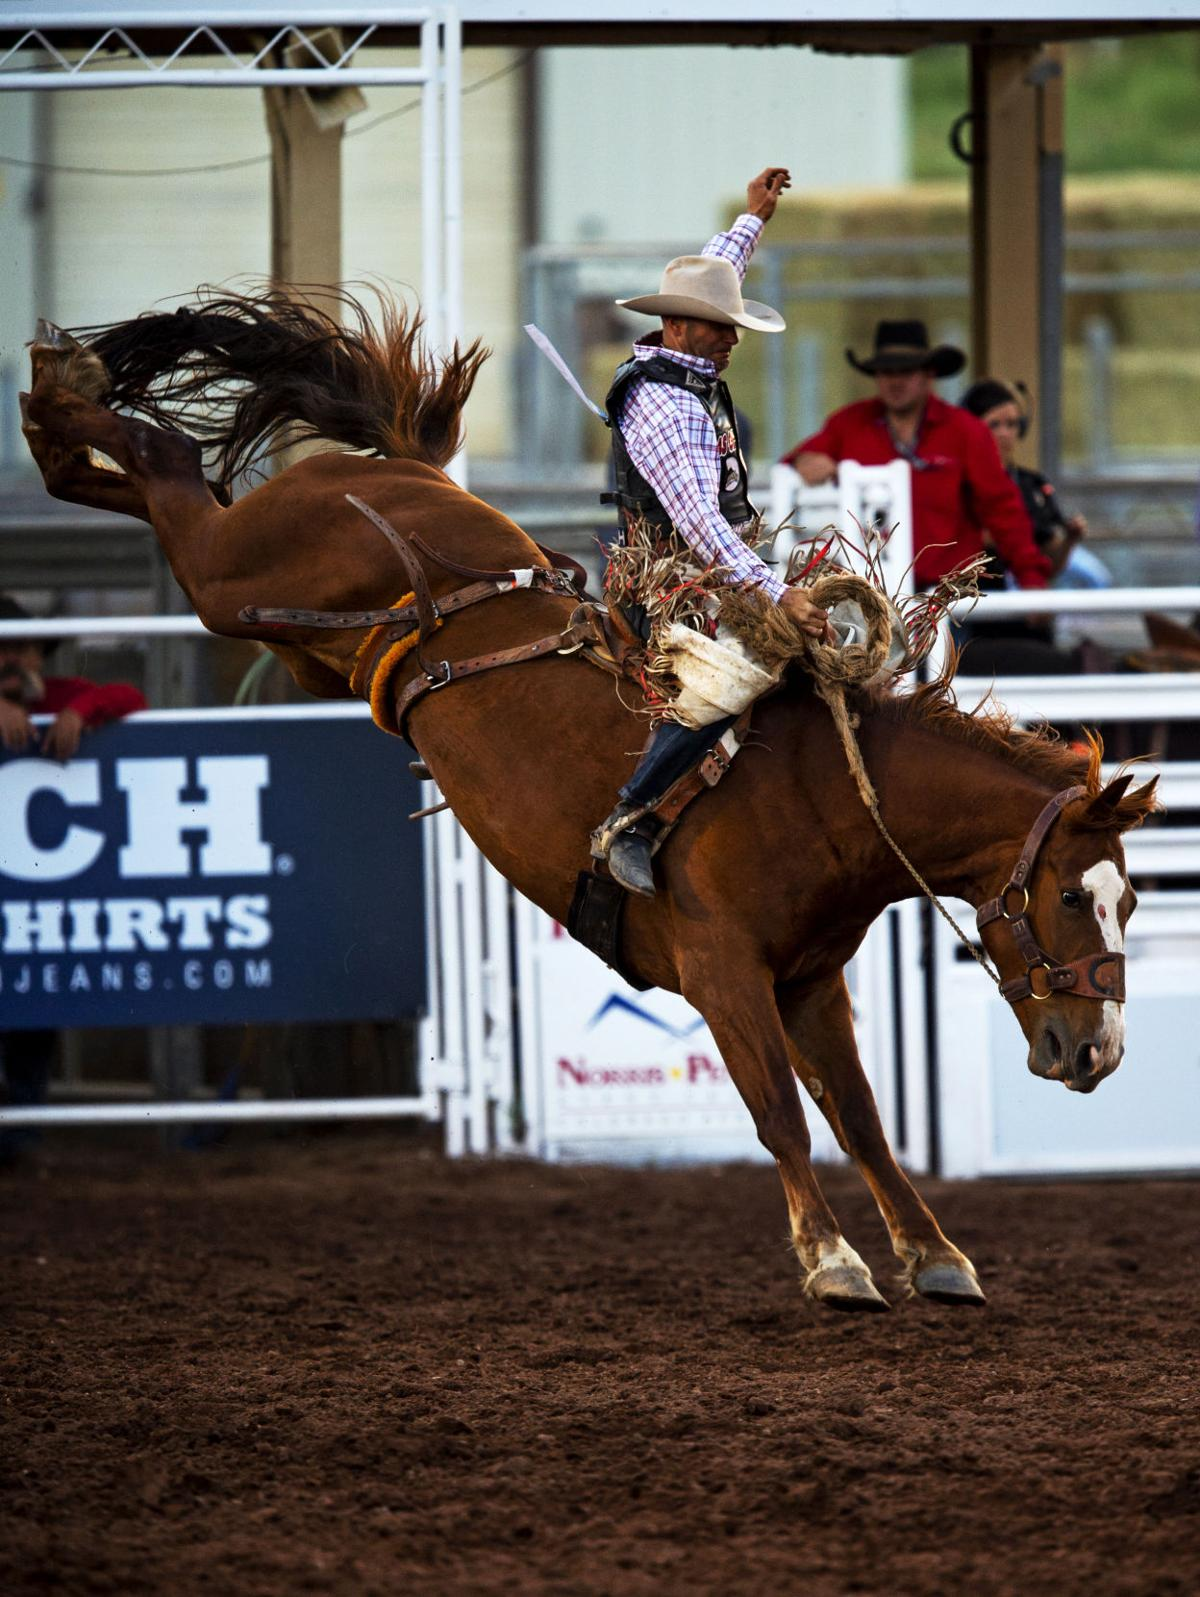 Colorado Springs' Grace Hill barrel races as youngest rider